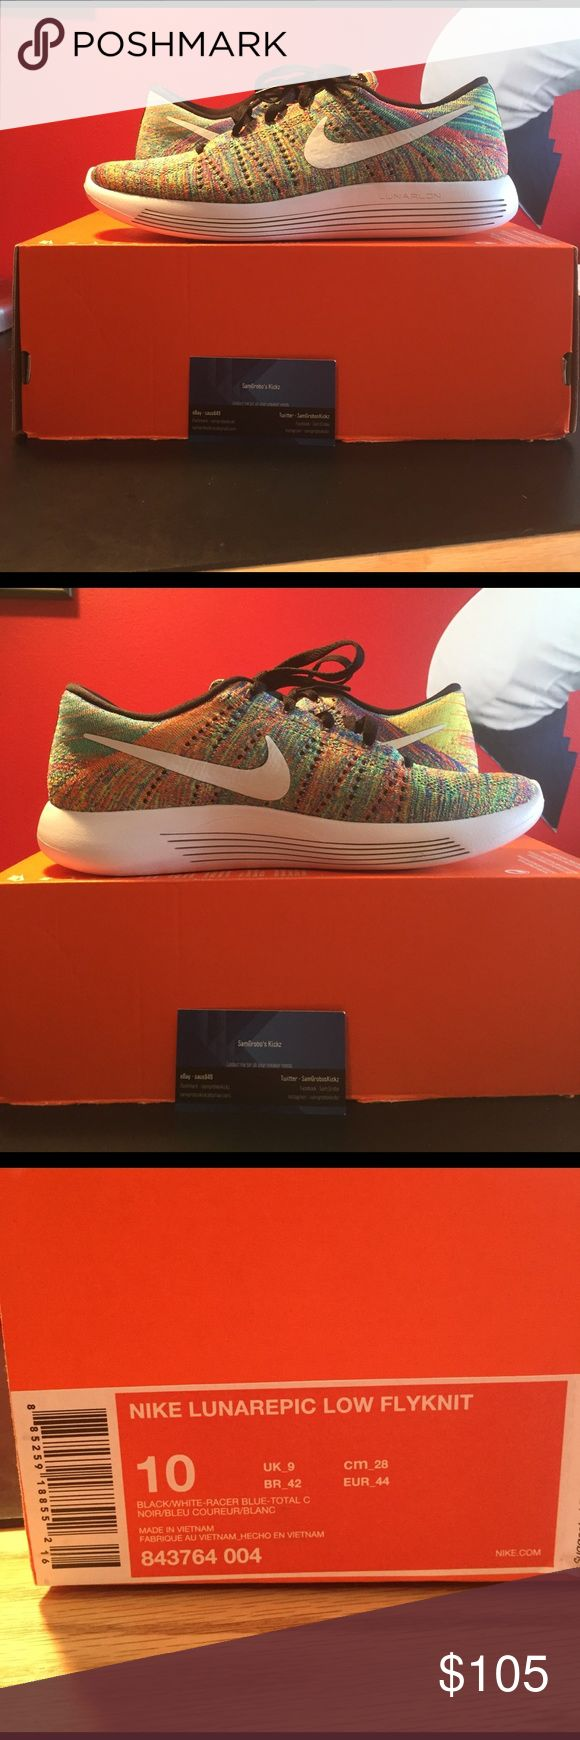 Nike LunarEpic Low Multicolor Flyknit - Size 10 Nike LunarEpic Low Multicolor Flyknit - size: US men's 10 - brand new, deadstock - comes with box without top Nike Shoes Sneakers